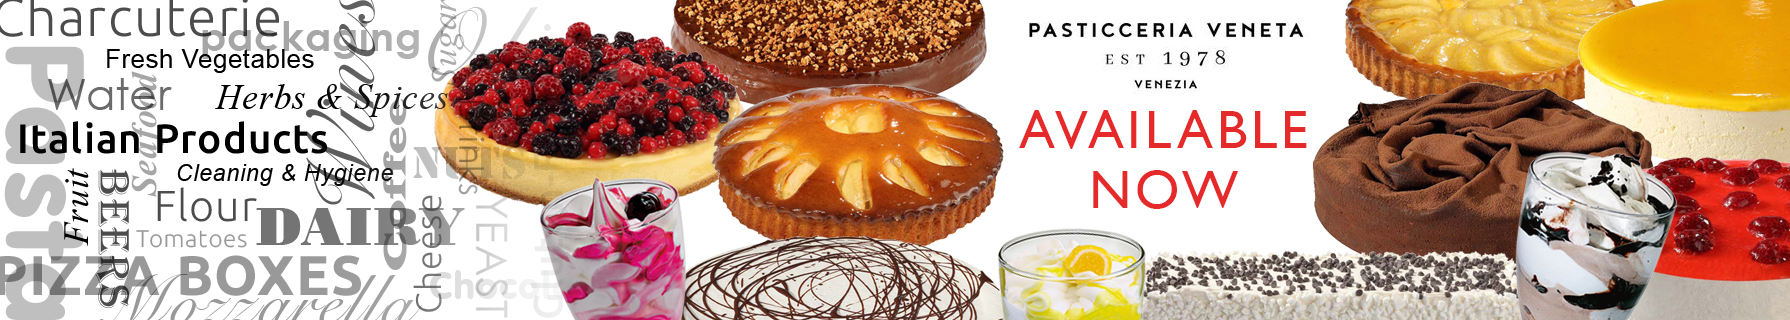 Pastries, cakes and desserts